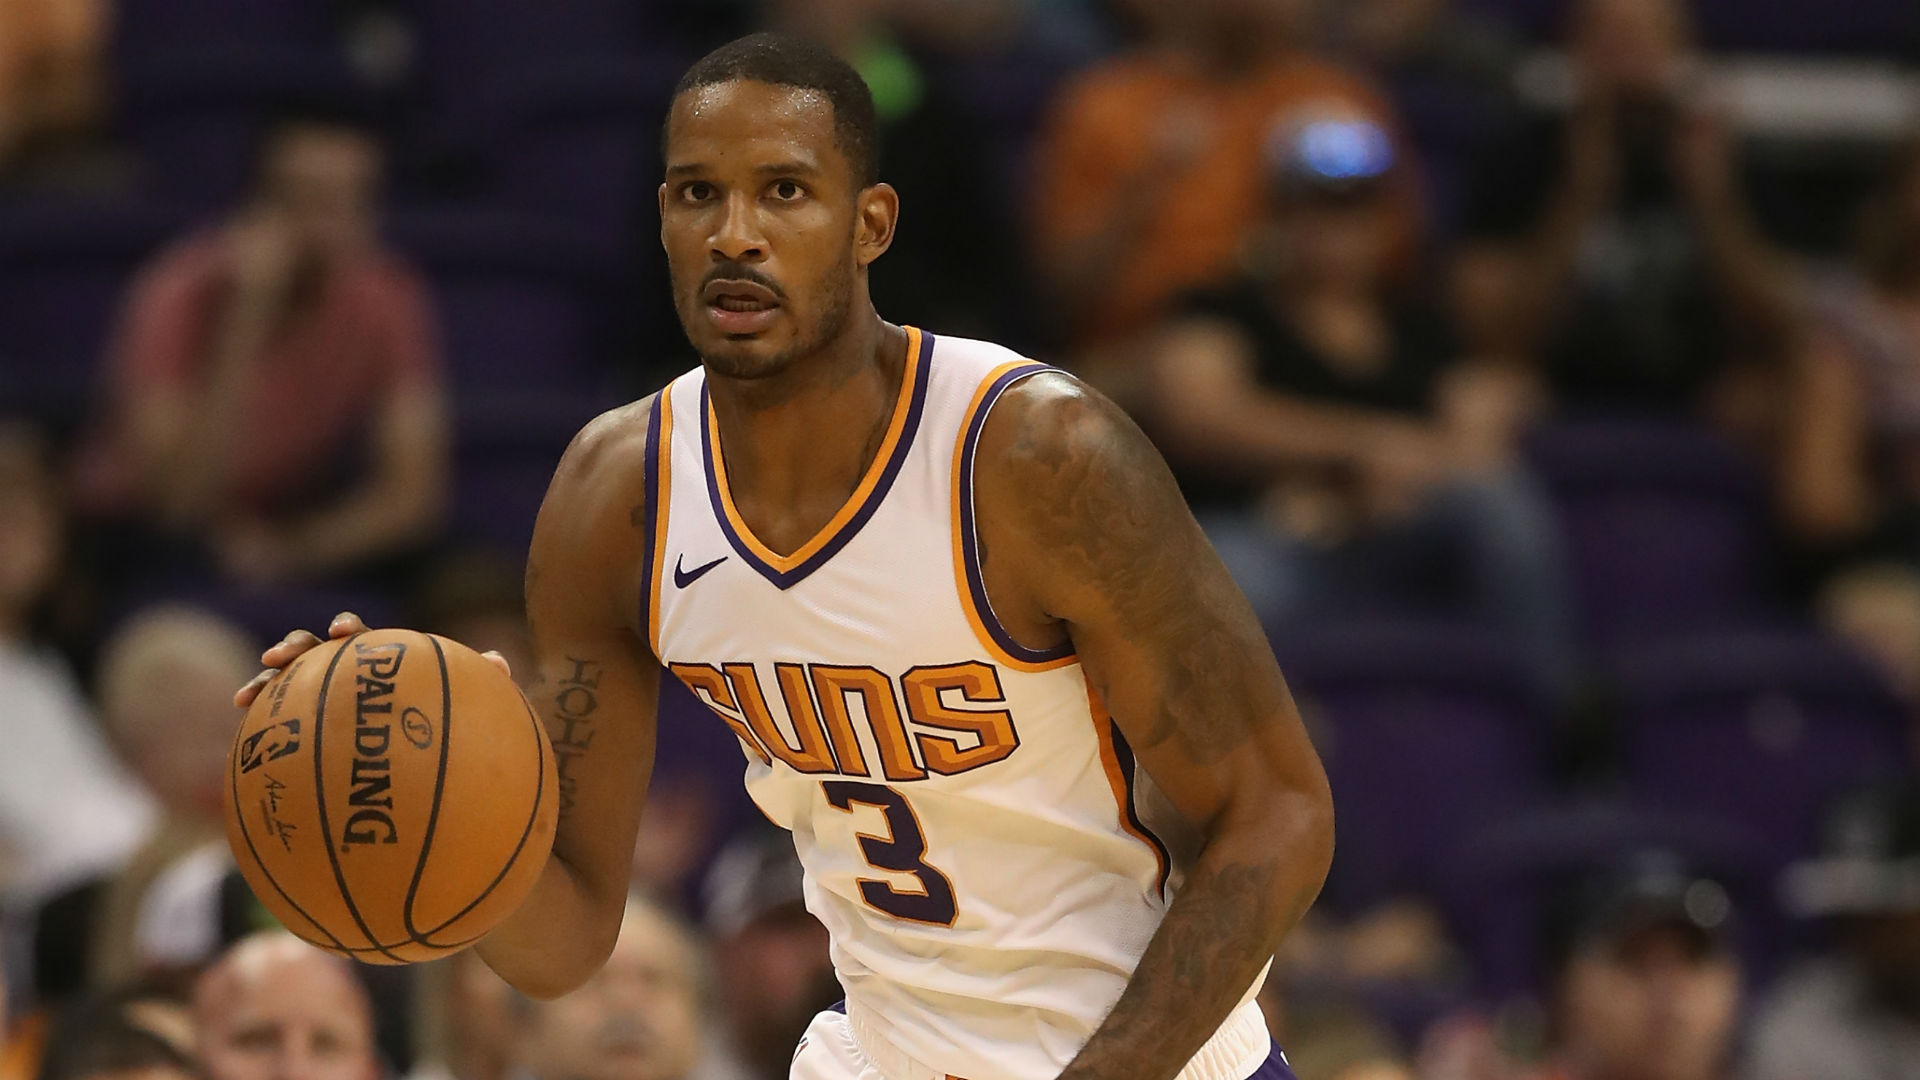 Wizards to acquire Ariza in three-team swap with Suns, Grizzlies